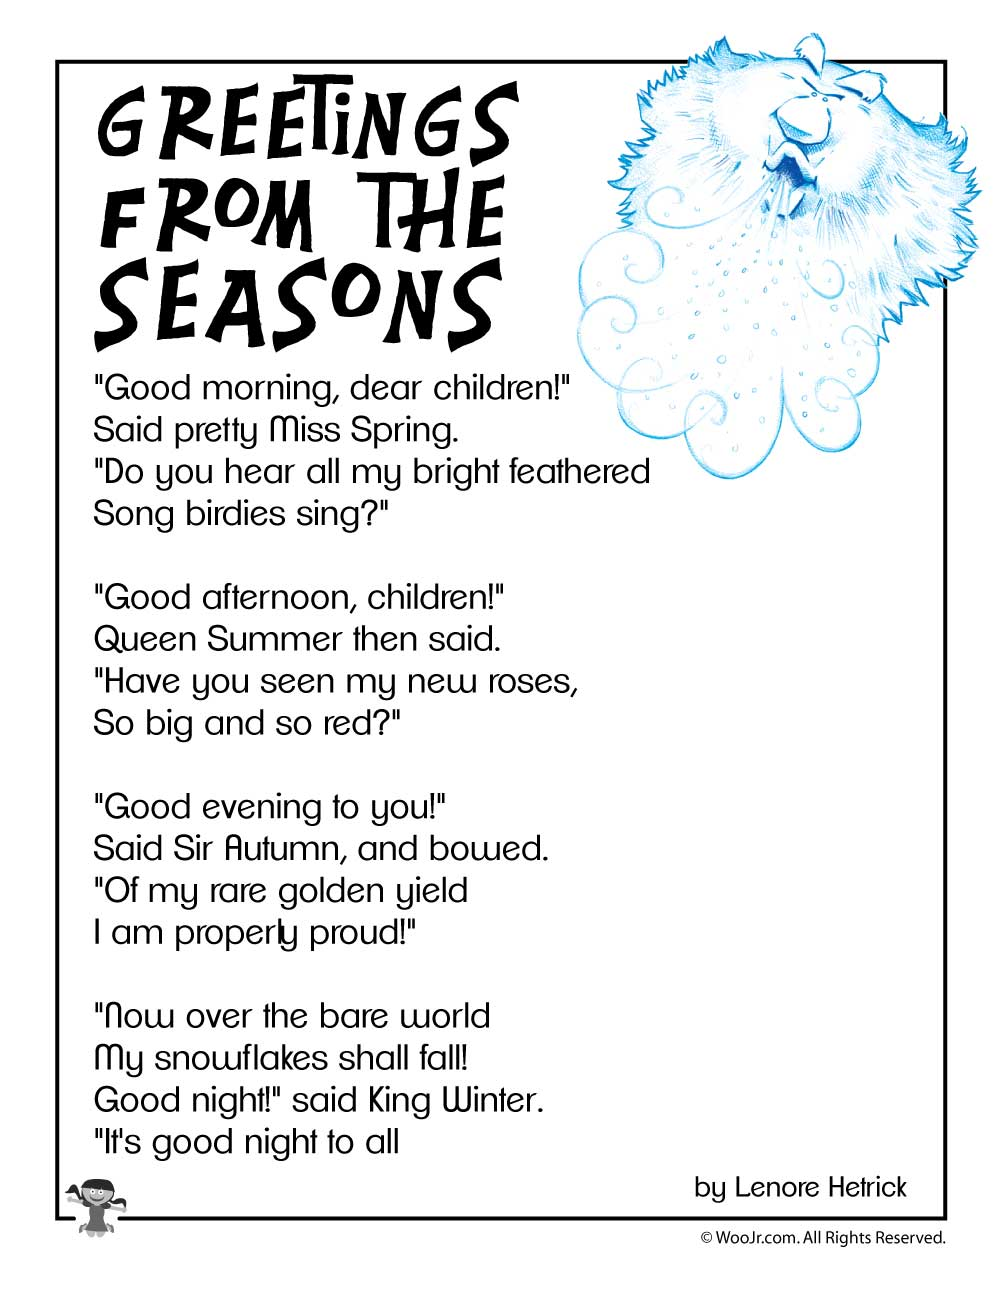 Greetings from the seasons childrens poetry woo jr kids activities use our special click to print button to send only the image to your printer m4hsunfo